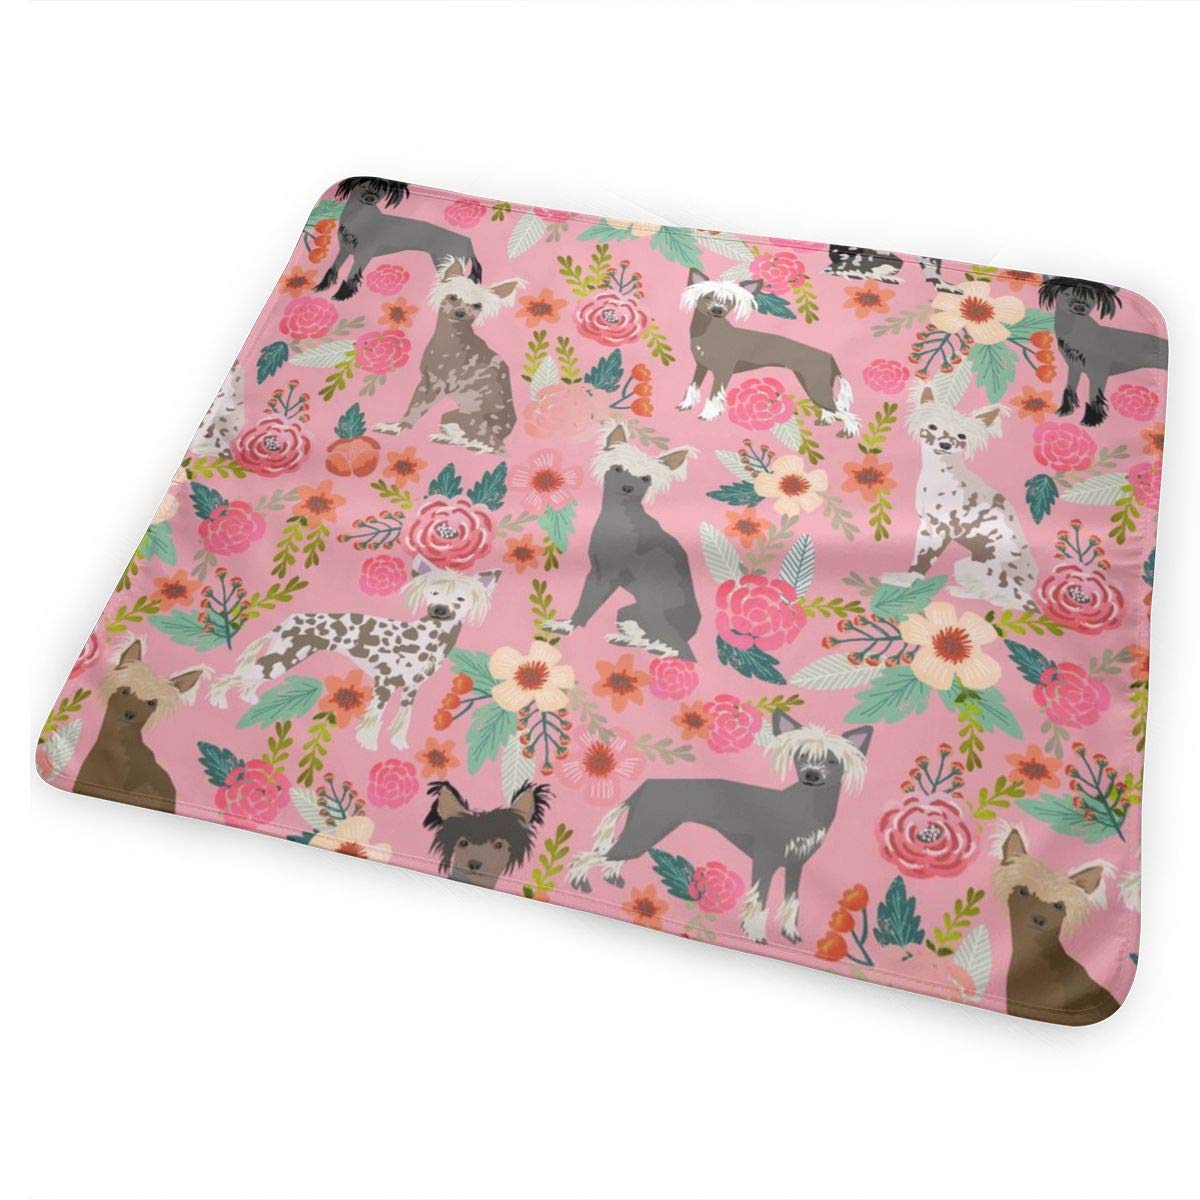 """Chinese Crested Dog Cute Pink Florals Flowers Dog Fabric Girly Sweet Hairless Dogs Baby Portable Reusable Changing Pad Mat 25.5""""x 31.5"""""""